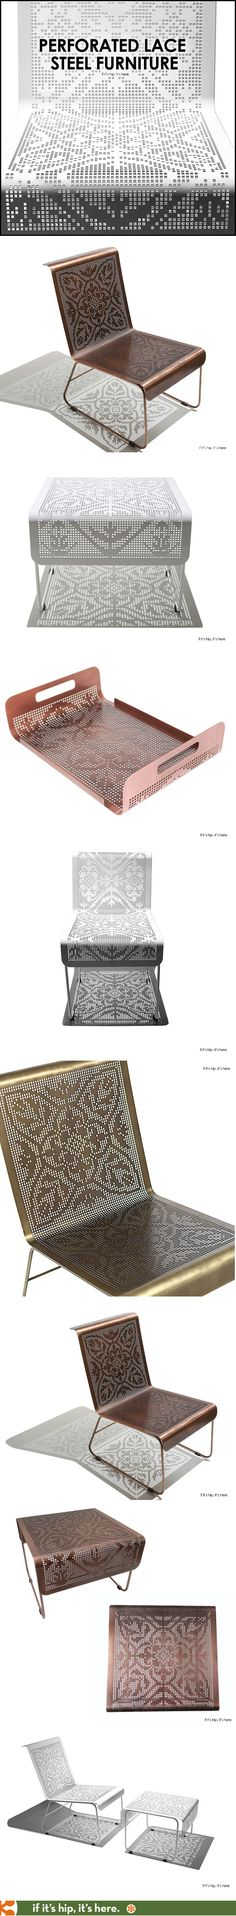 Metal furniture inspired by Brazilian Lace Embroidery casts shadows as cool at the items themselves.